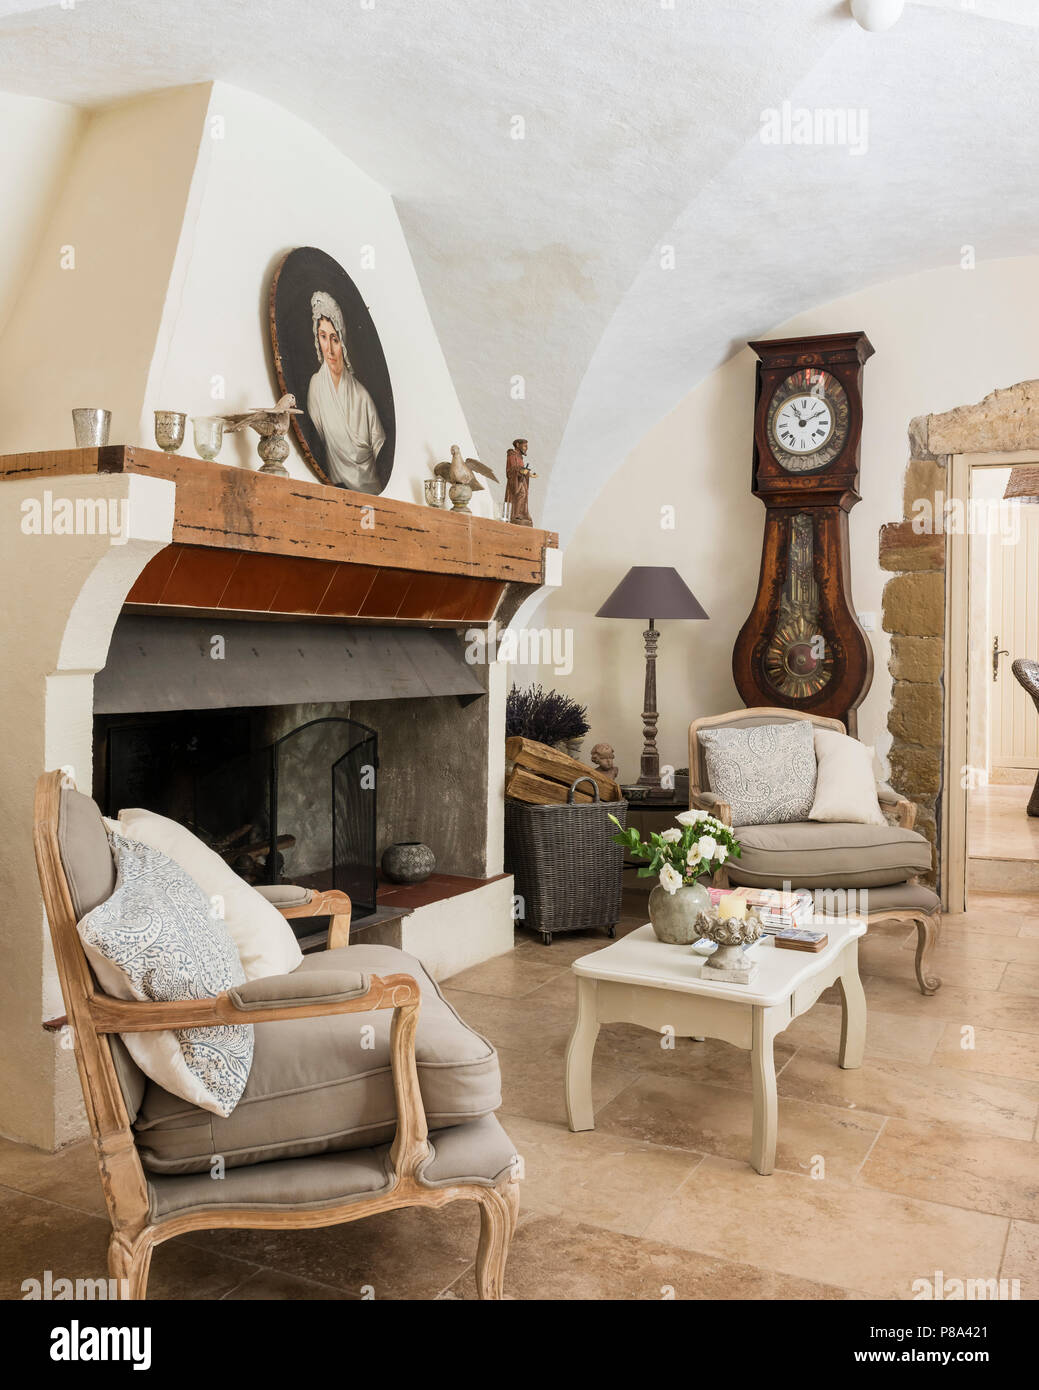 Vaulted ceiling  and upholstsred armchairs with antique clock - Stock Image